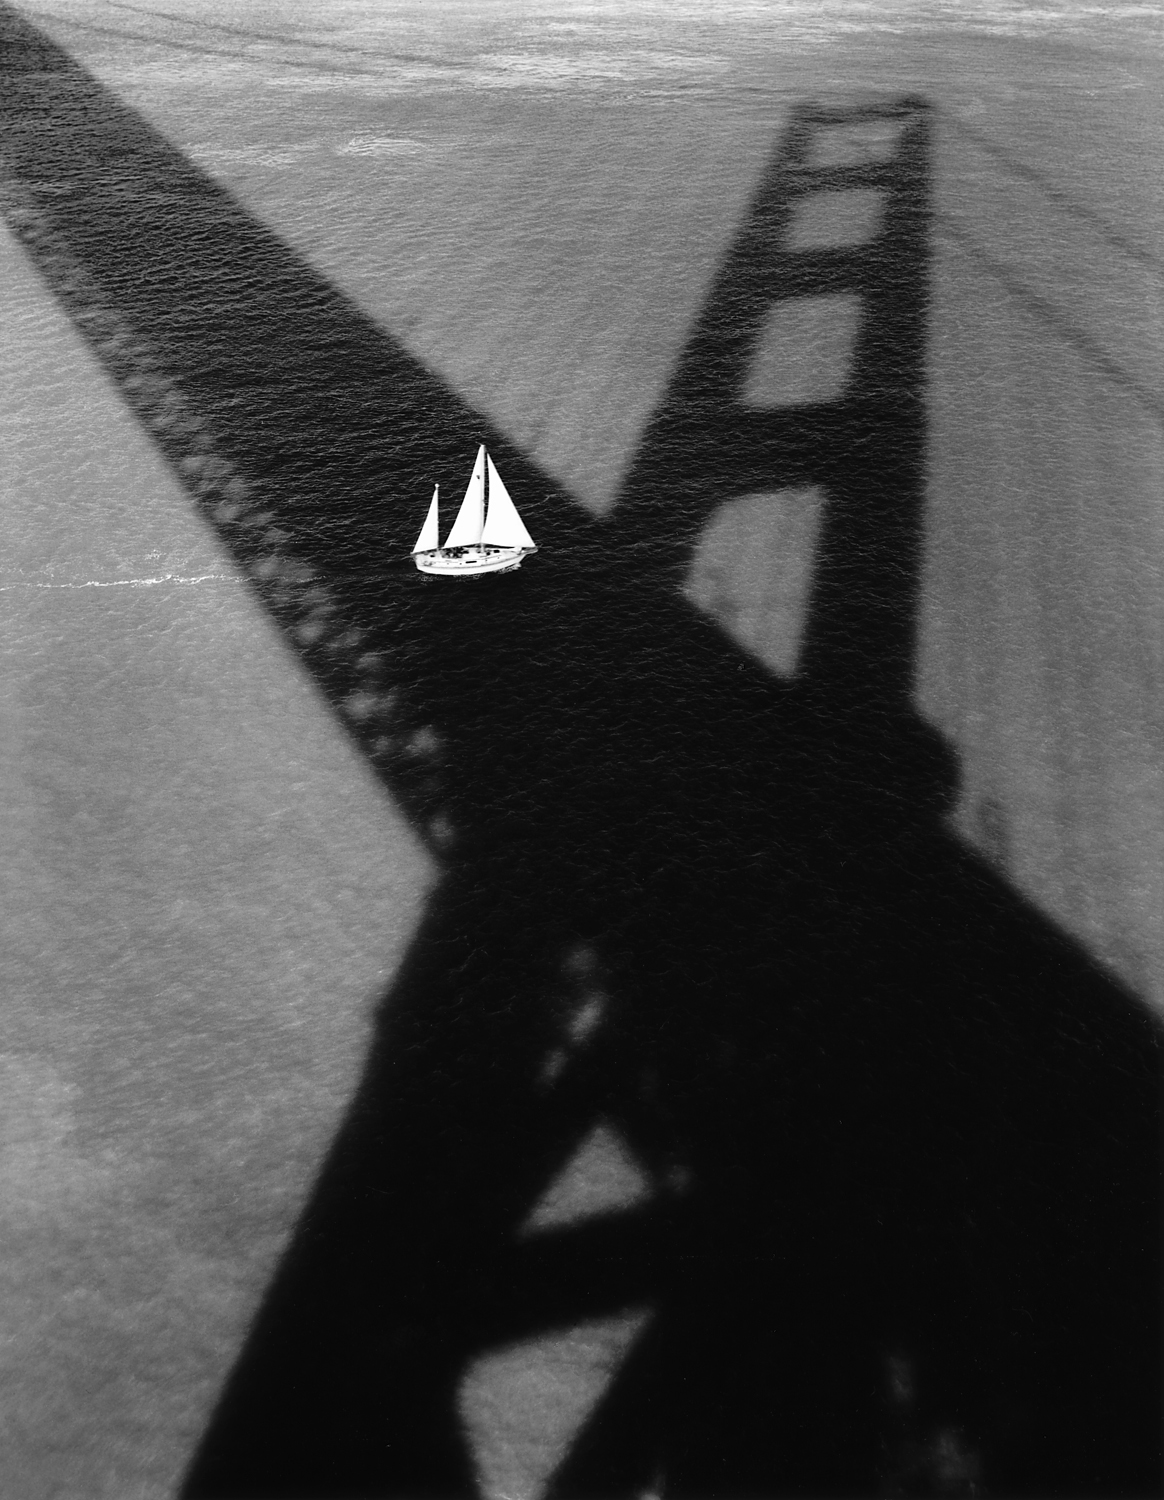 Stuart Levy - Golden Gate Bridge, #176